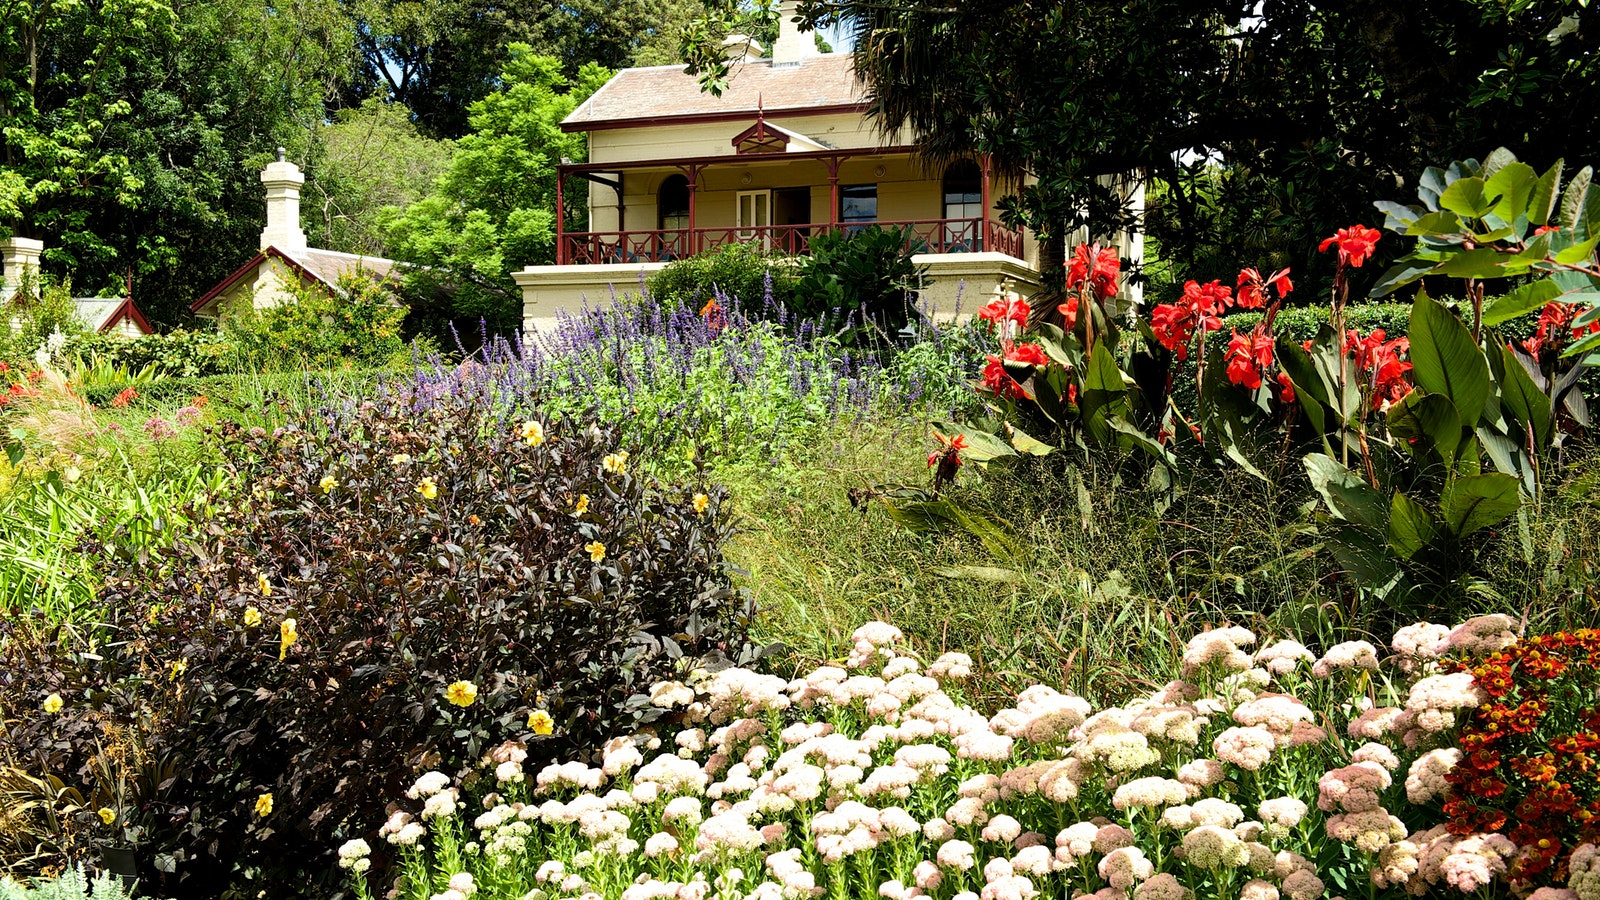 The Gardens House